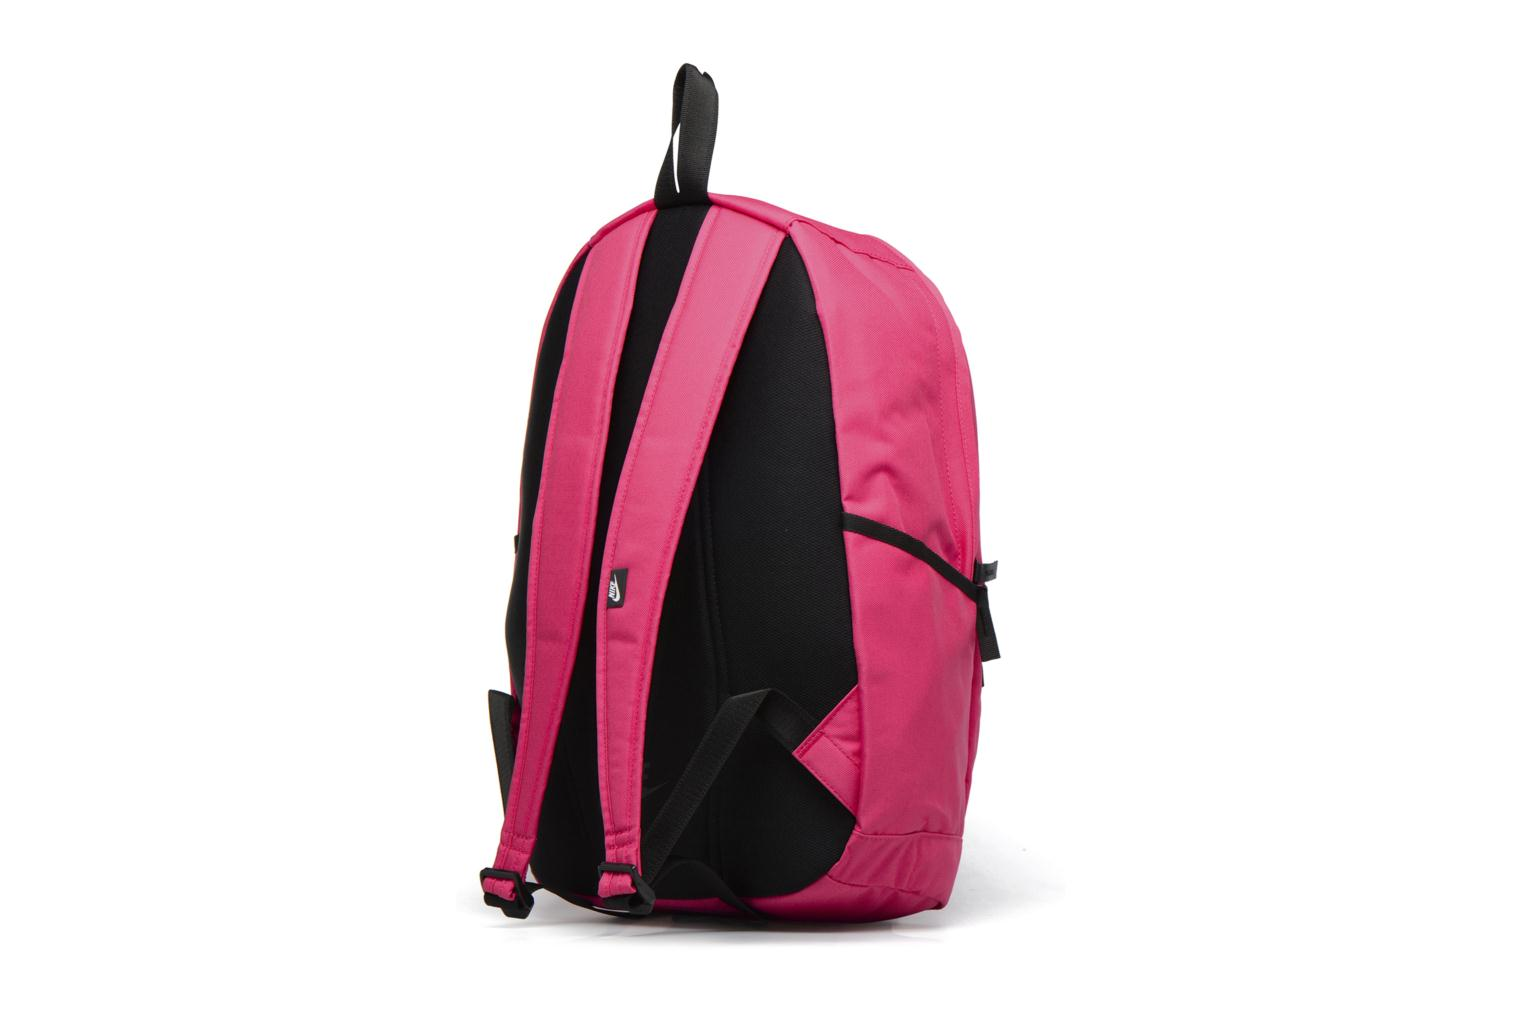 Nike Soleday Backpack S Pink/Black/White